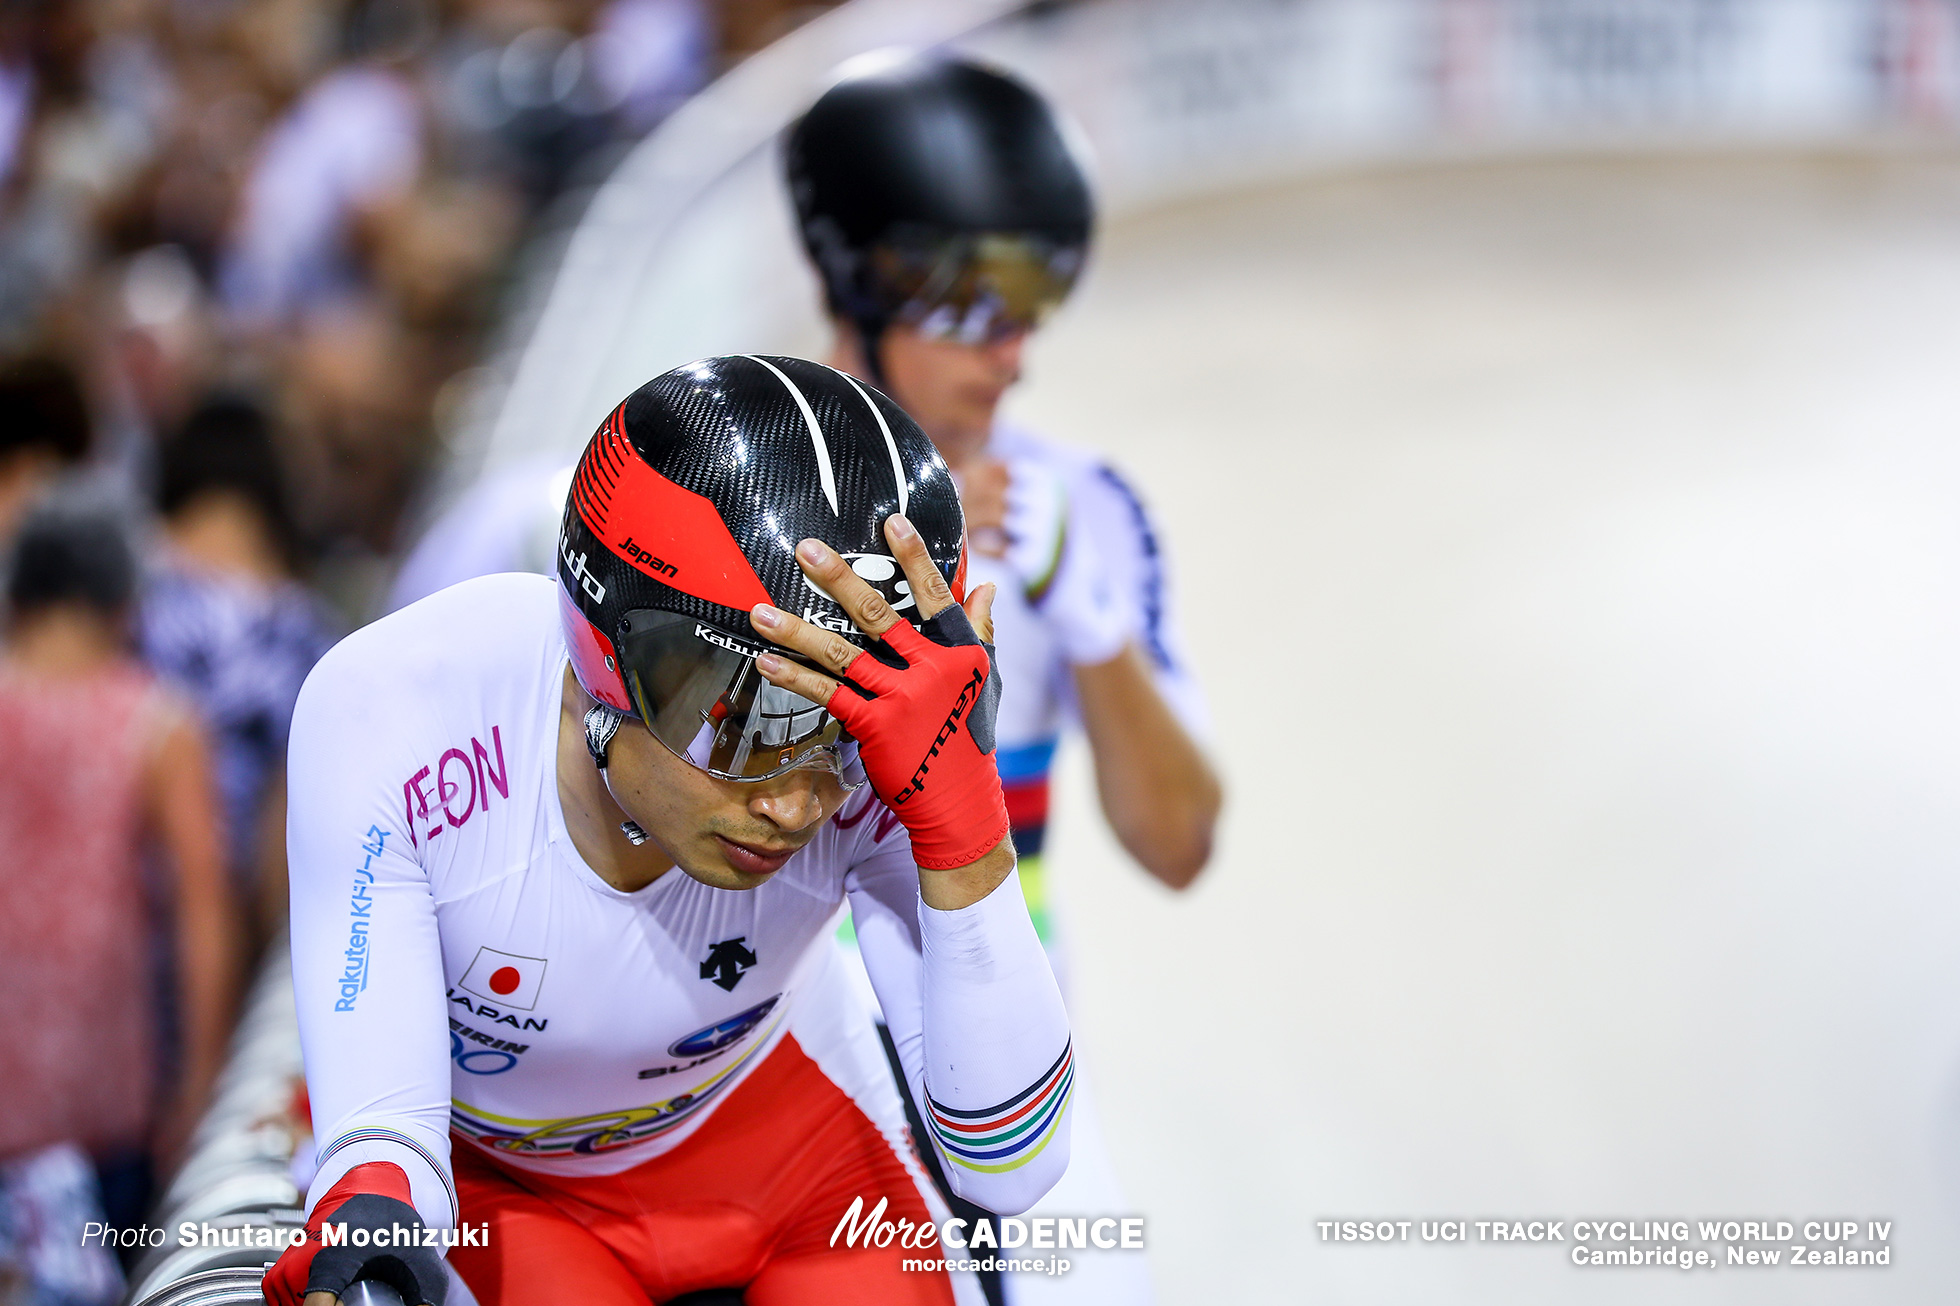 Elimination / Men's Omnium / TISSOT UCI TRACK CYCLING WORLD CUP IV, Cambridge, New Zealand, 橋本英也